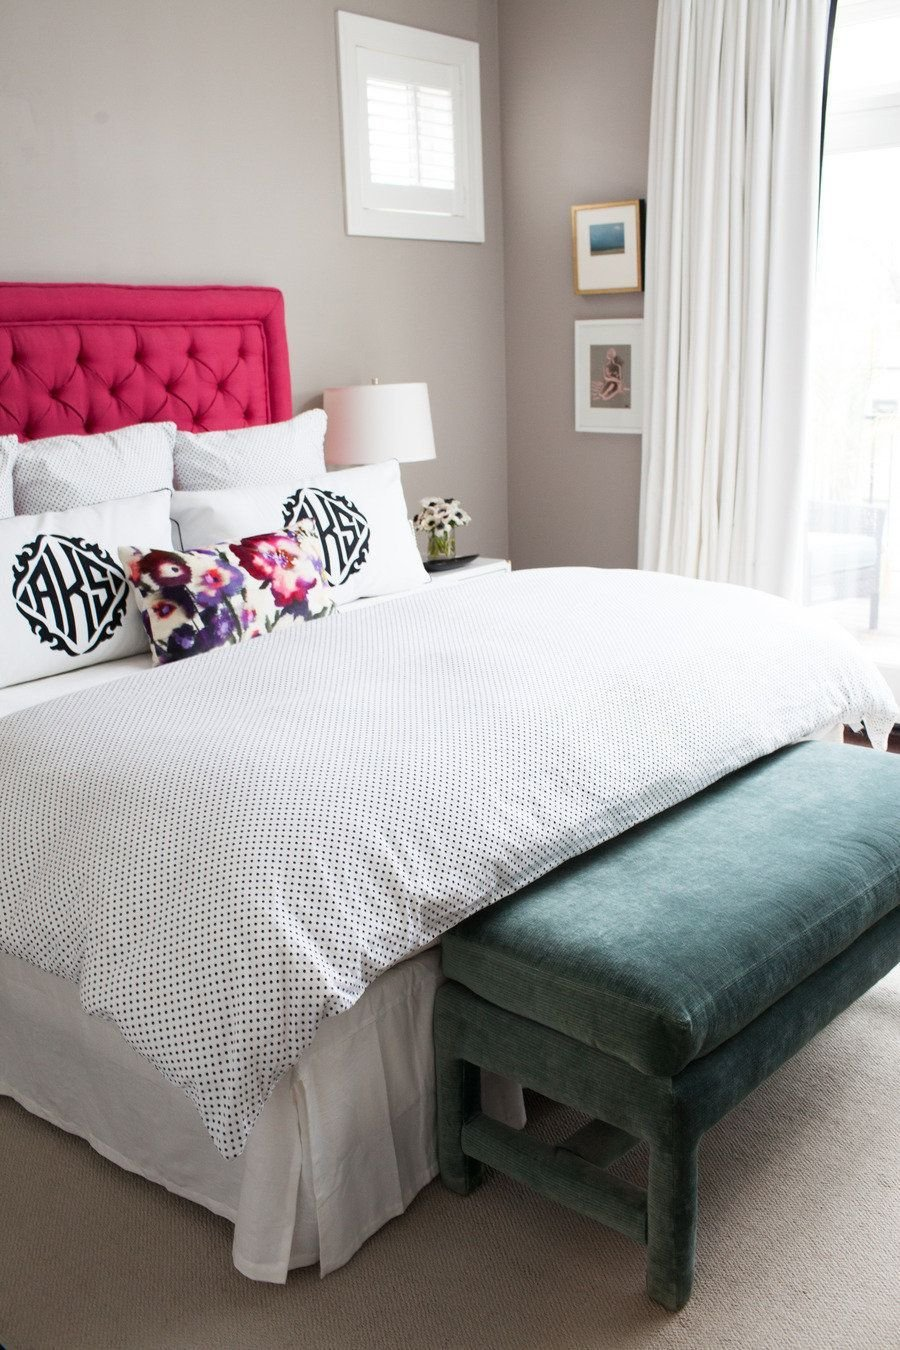 Best Alexandra Kaehlers Pink Black Bedroom In 2019 Master With Pictures